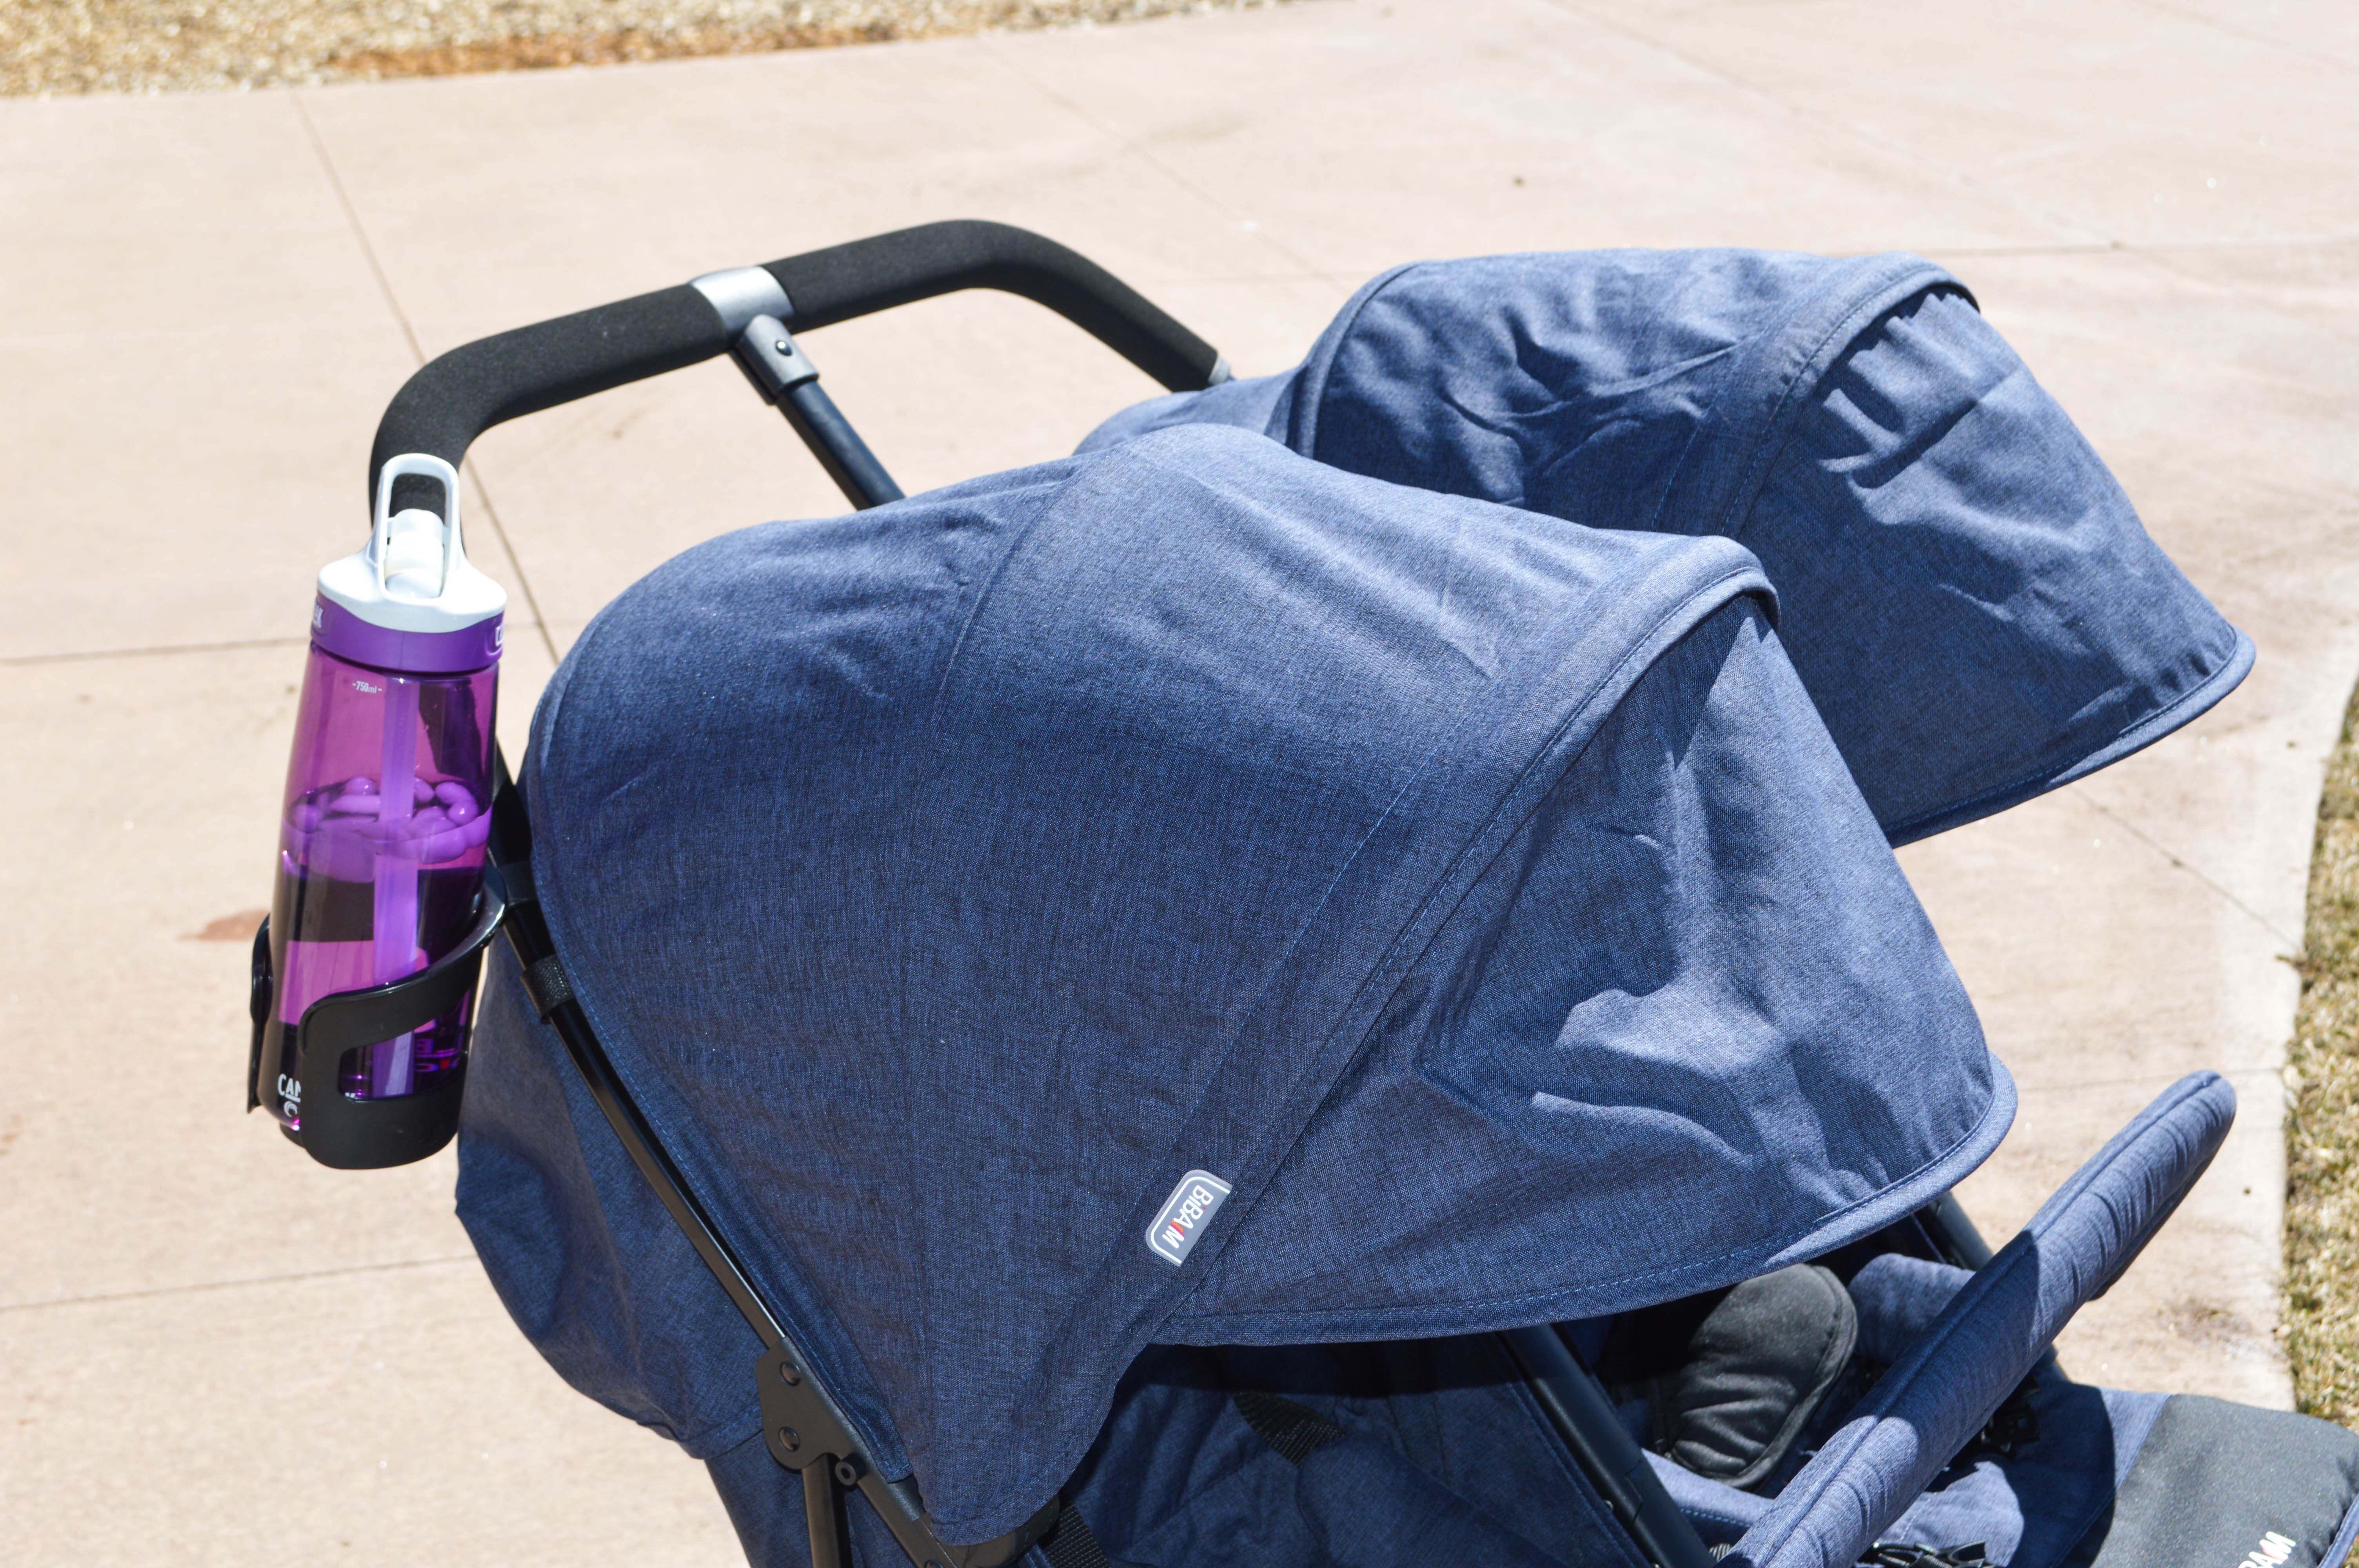 Biba M Double Stroller Review featured by popular Denver life and style blogger, All Things Lovely